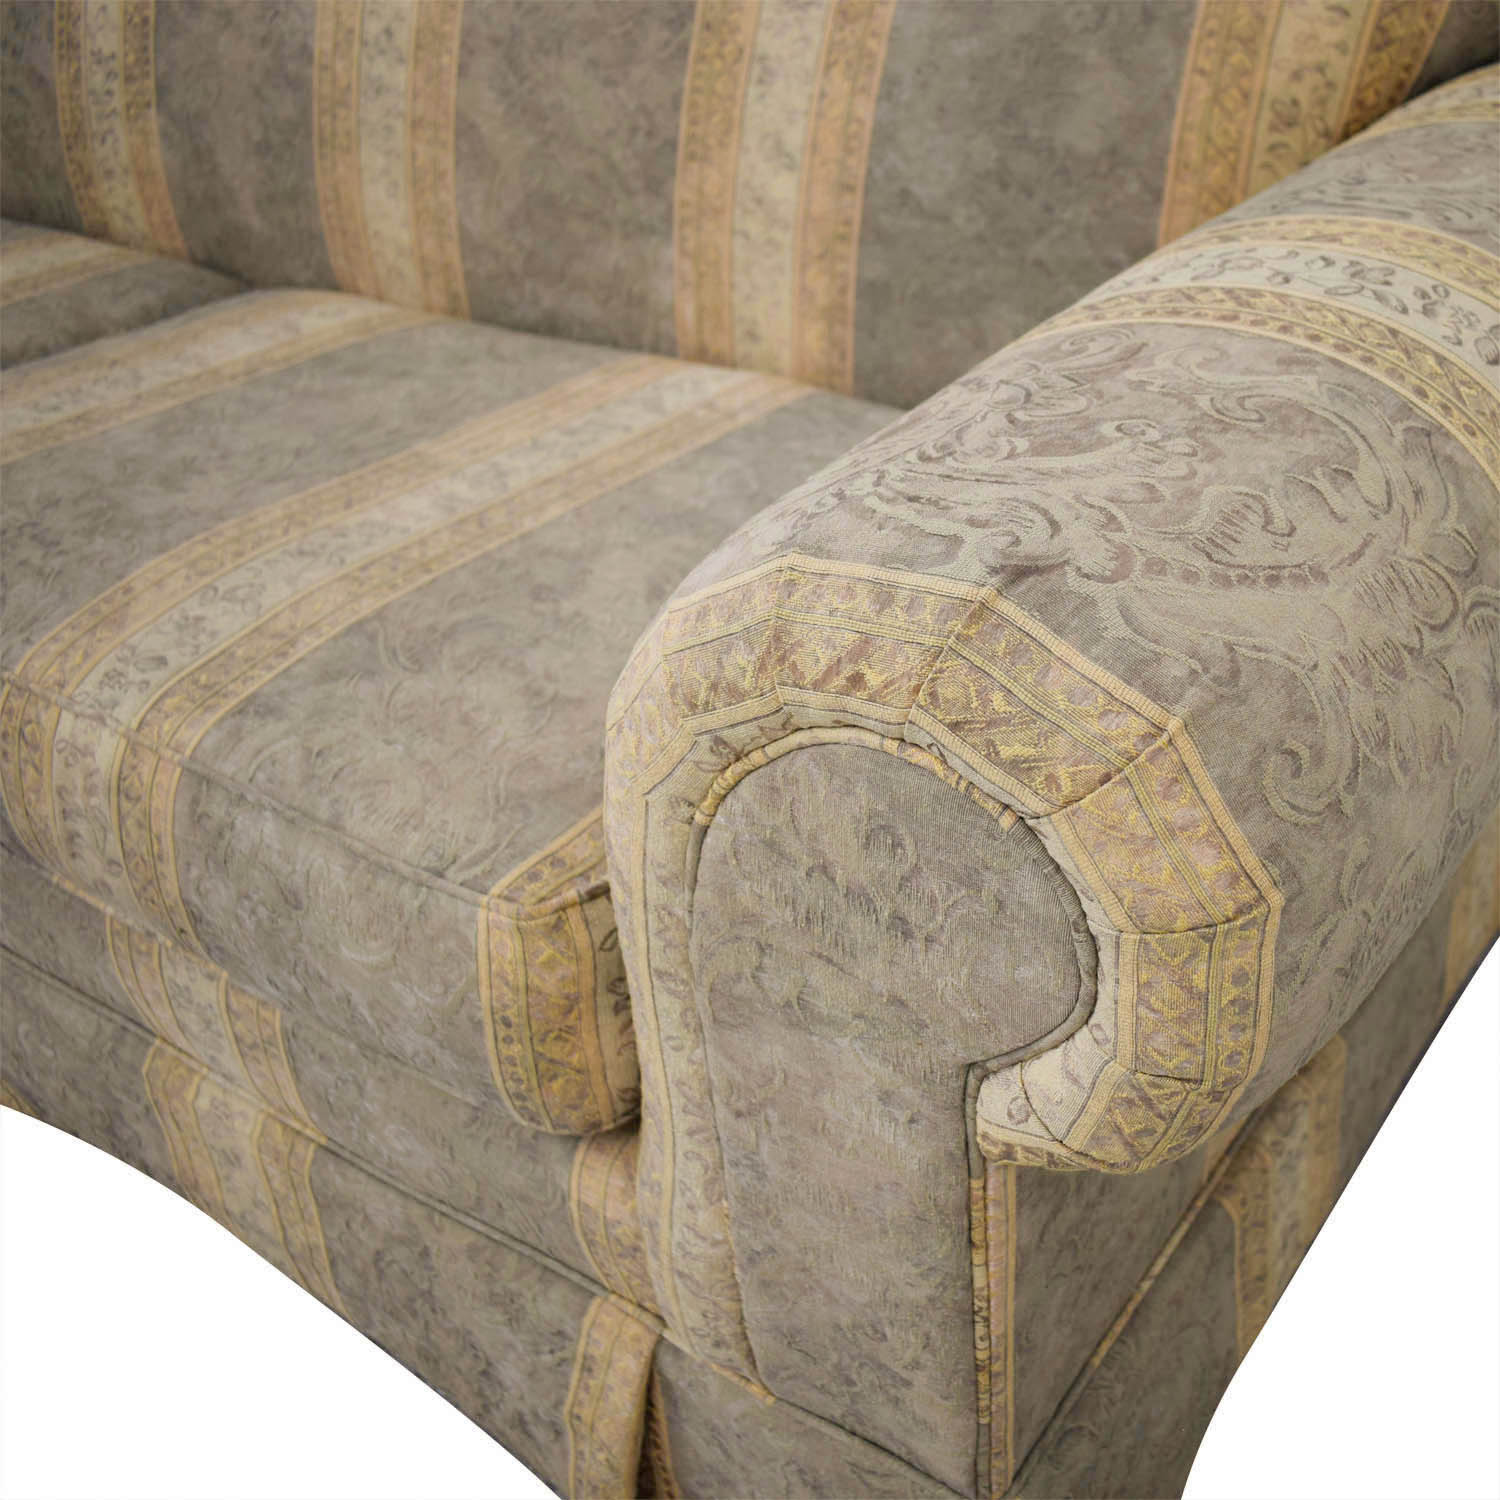 Thomasville Thomasville Impressions Regency Style Sofa coupon